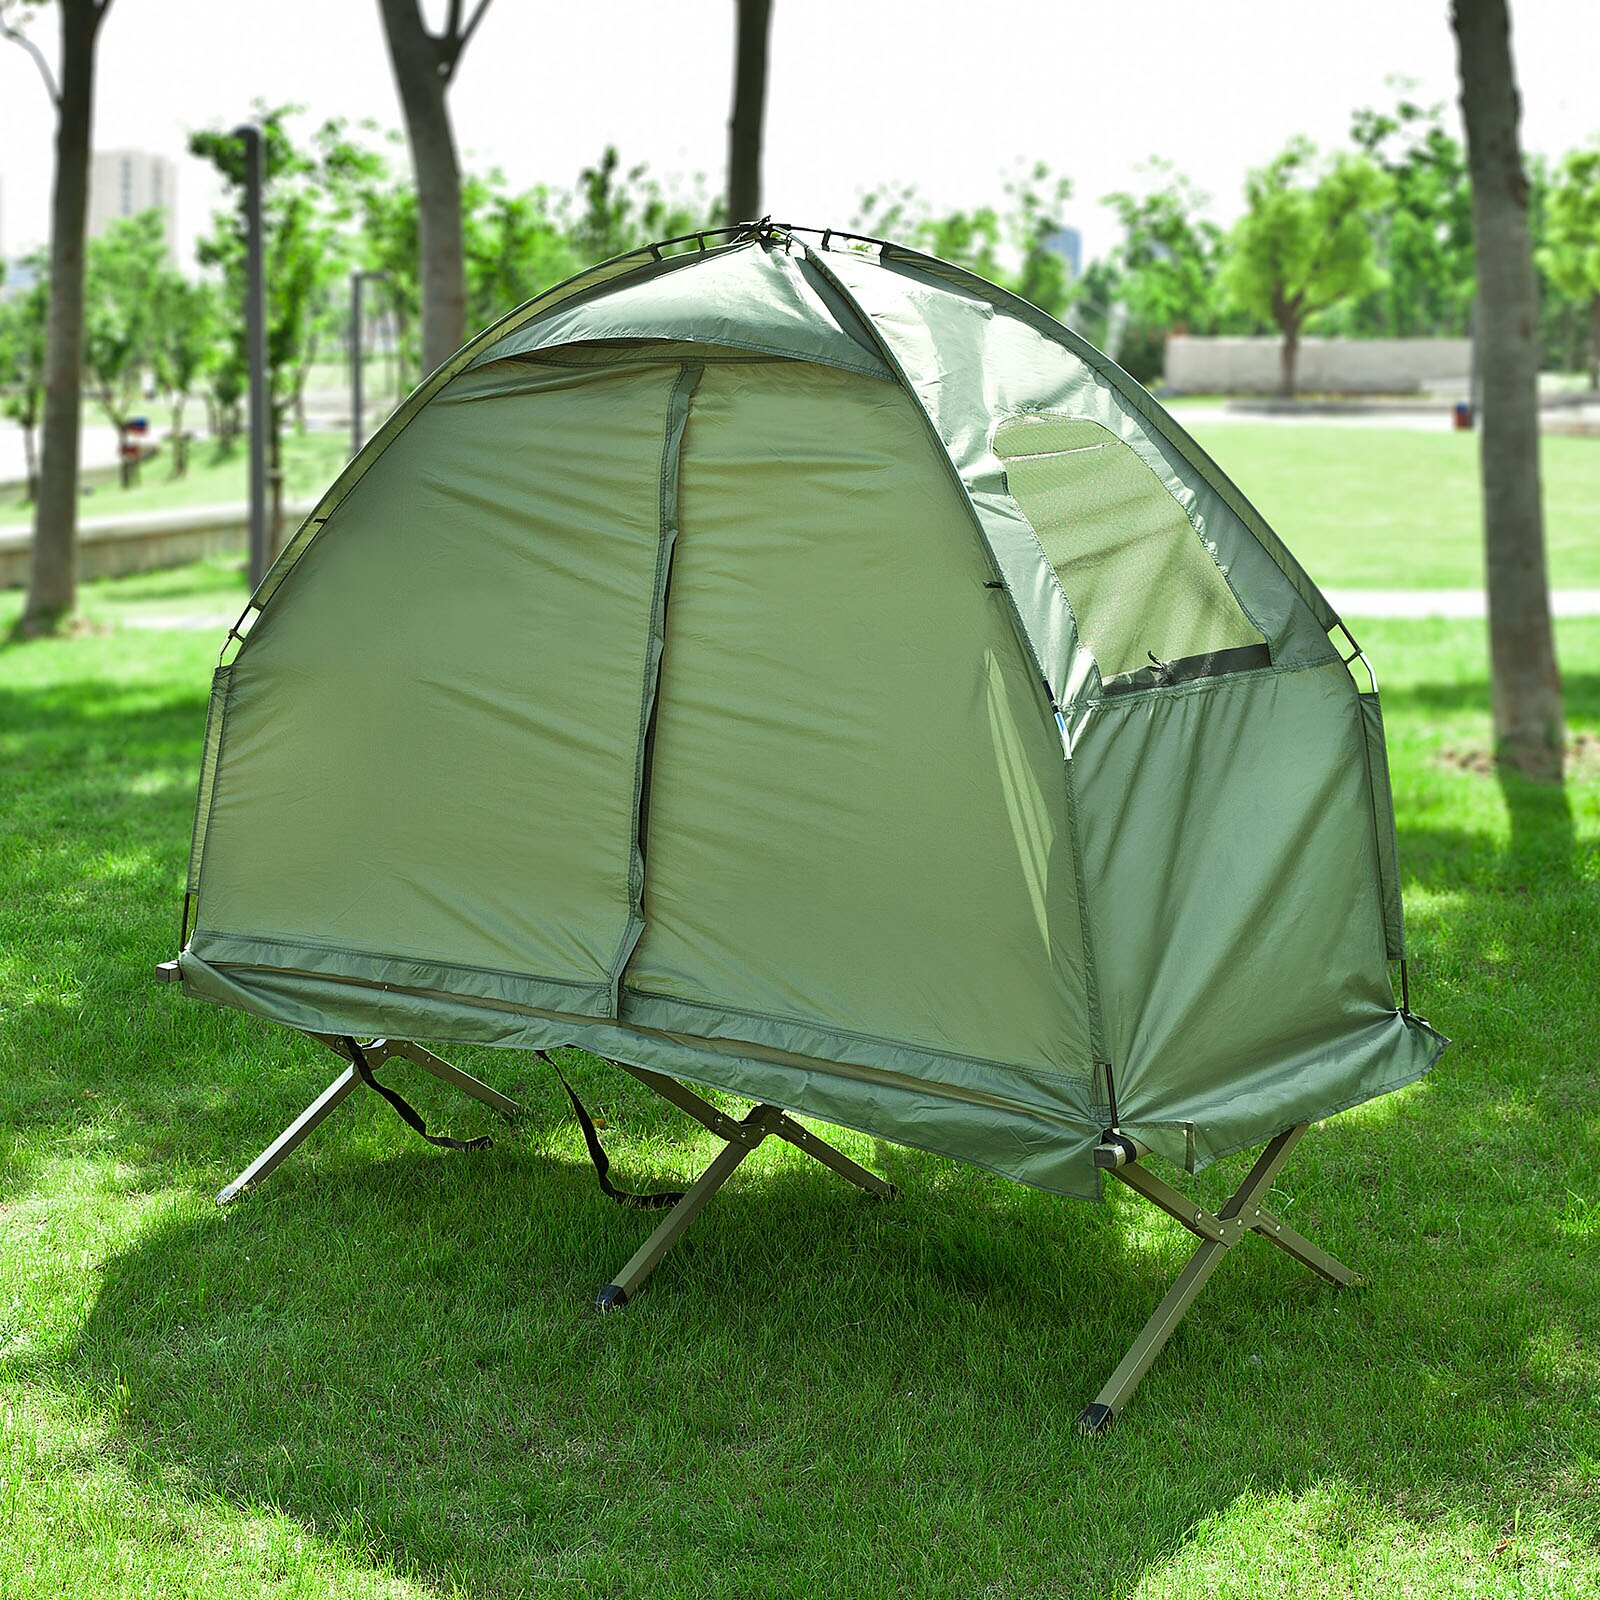 Haotian Compact Collapsable Portable C&ing Cot Air MattressPop-Up Tent Tent & Haotiangroup   Rakuten: Haotian Compact Collapsable Portable ...